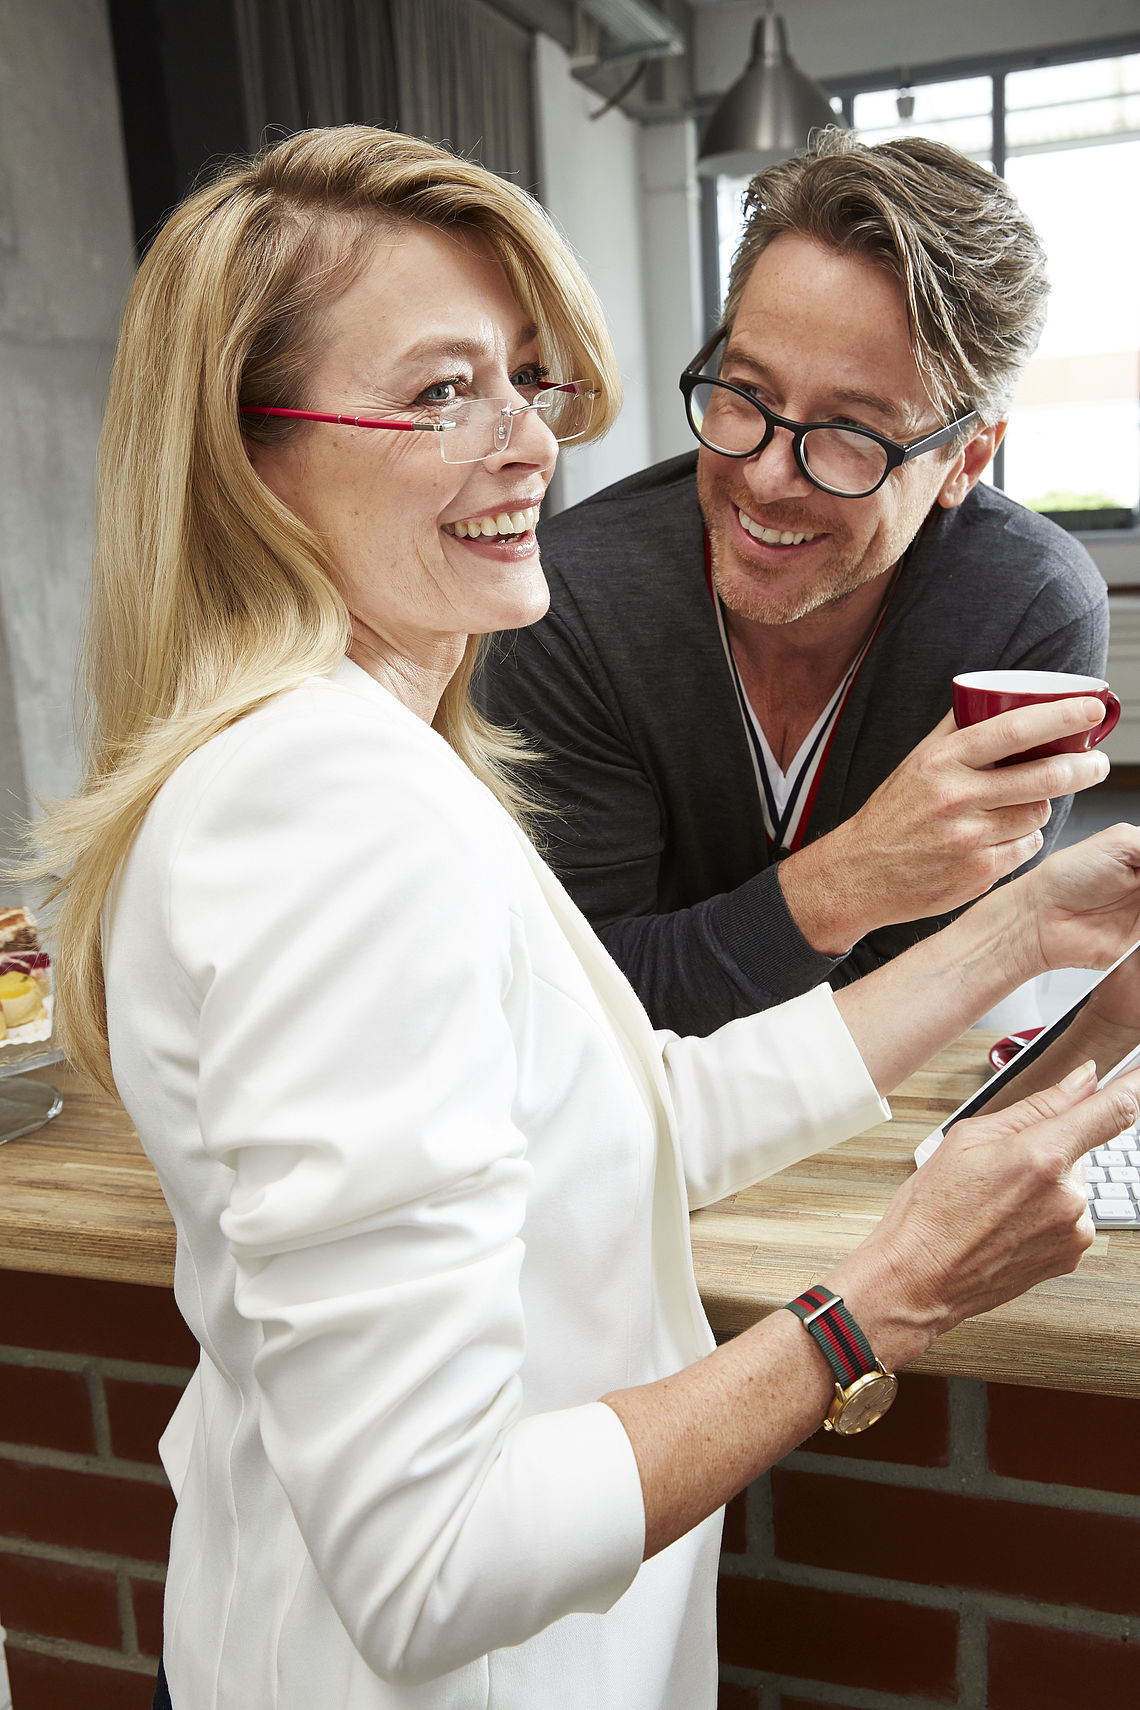 Man and woman drinking coffee, wearing reading glasses